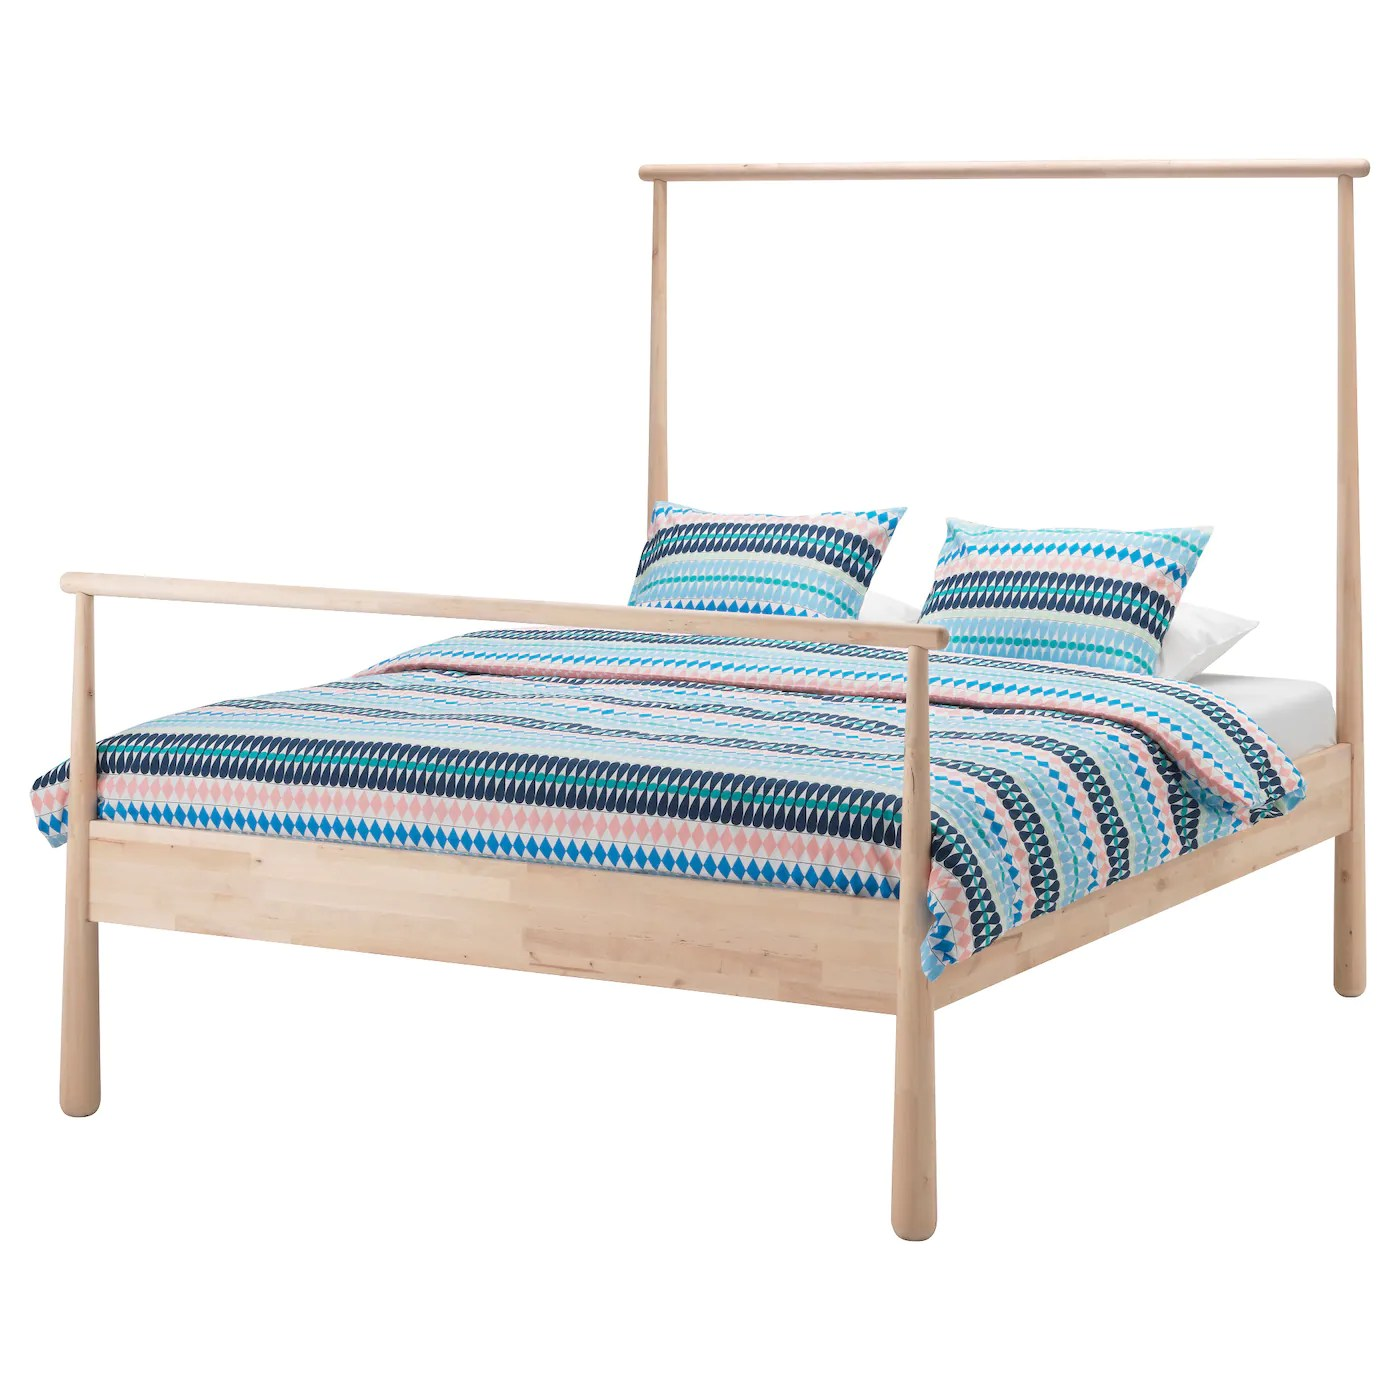 Double Beds Ikea GjÖra Bed Frame Birch Luröy Standard Double Ikea